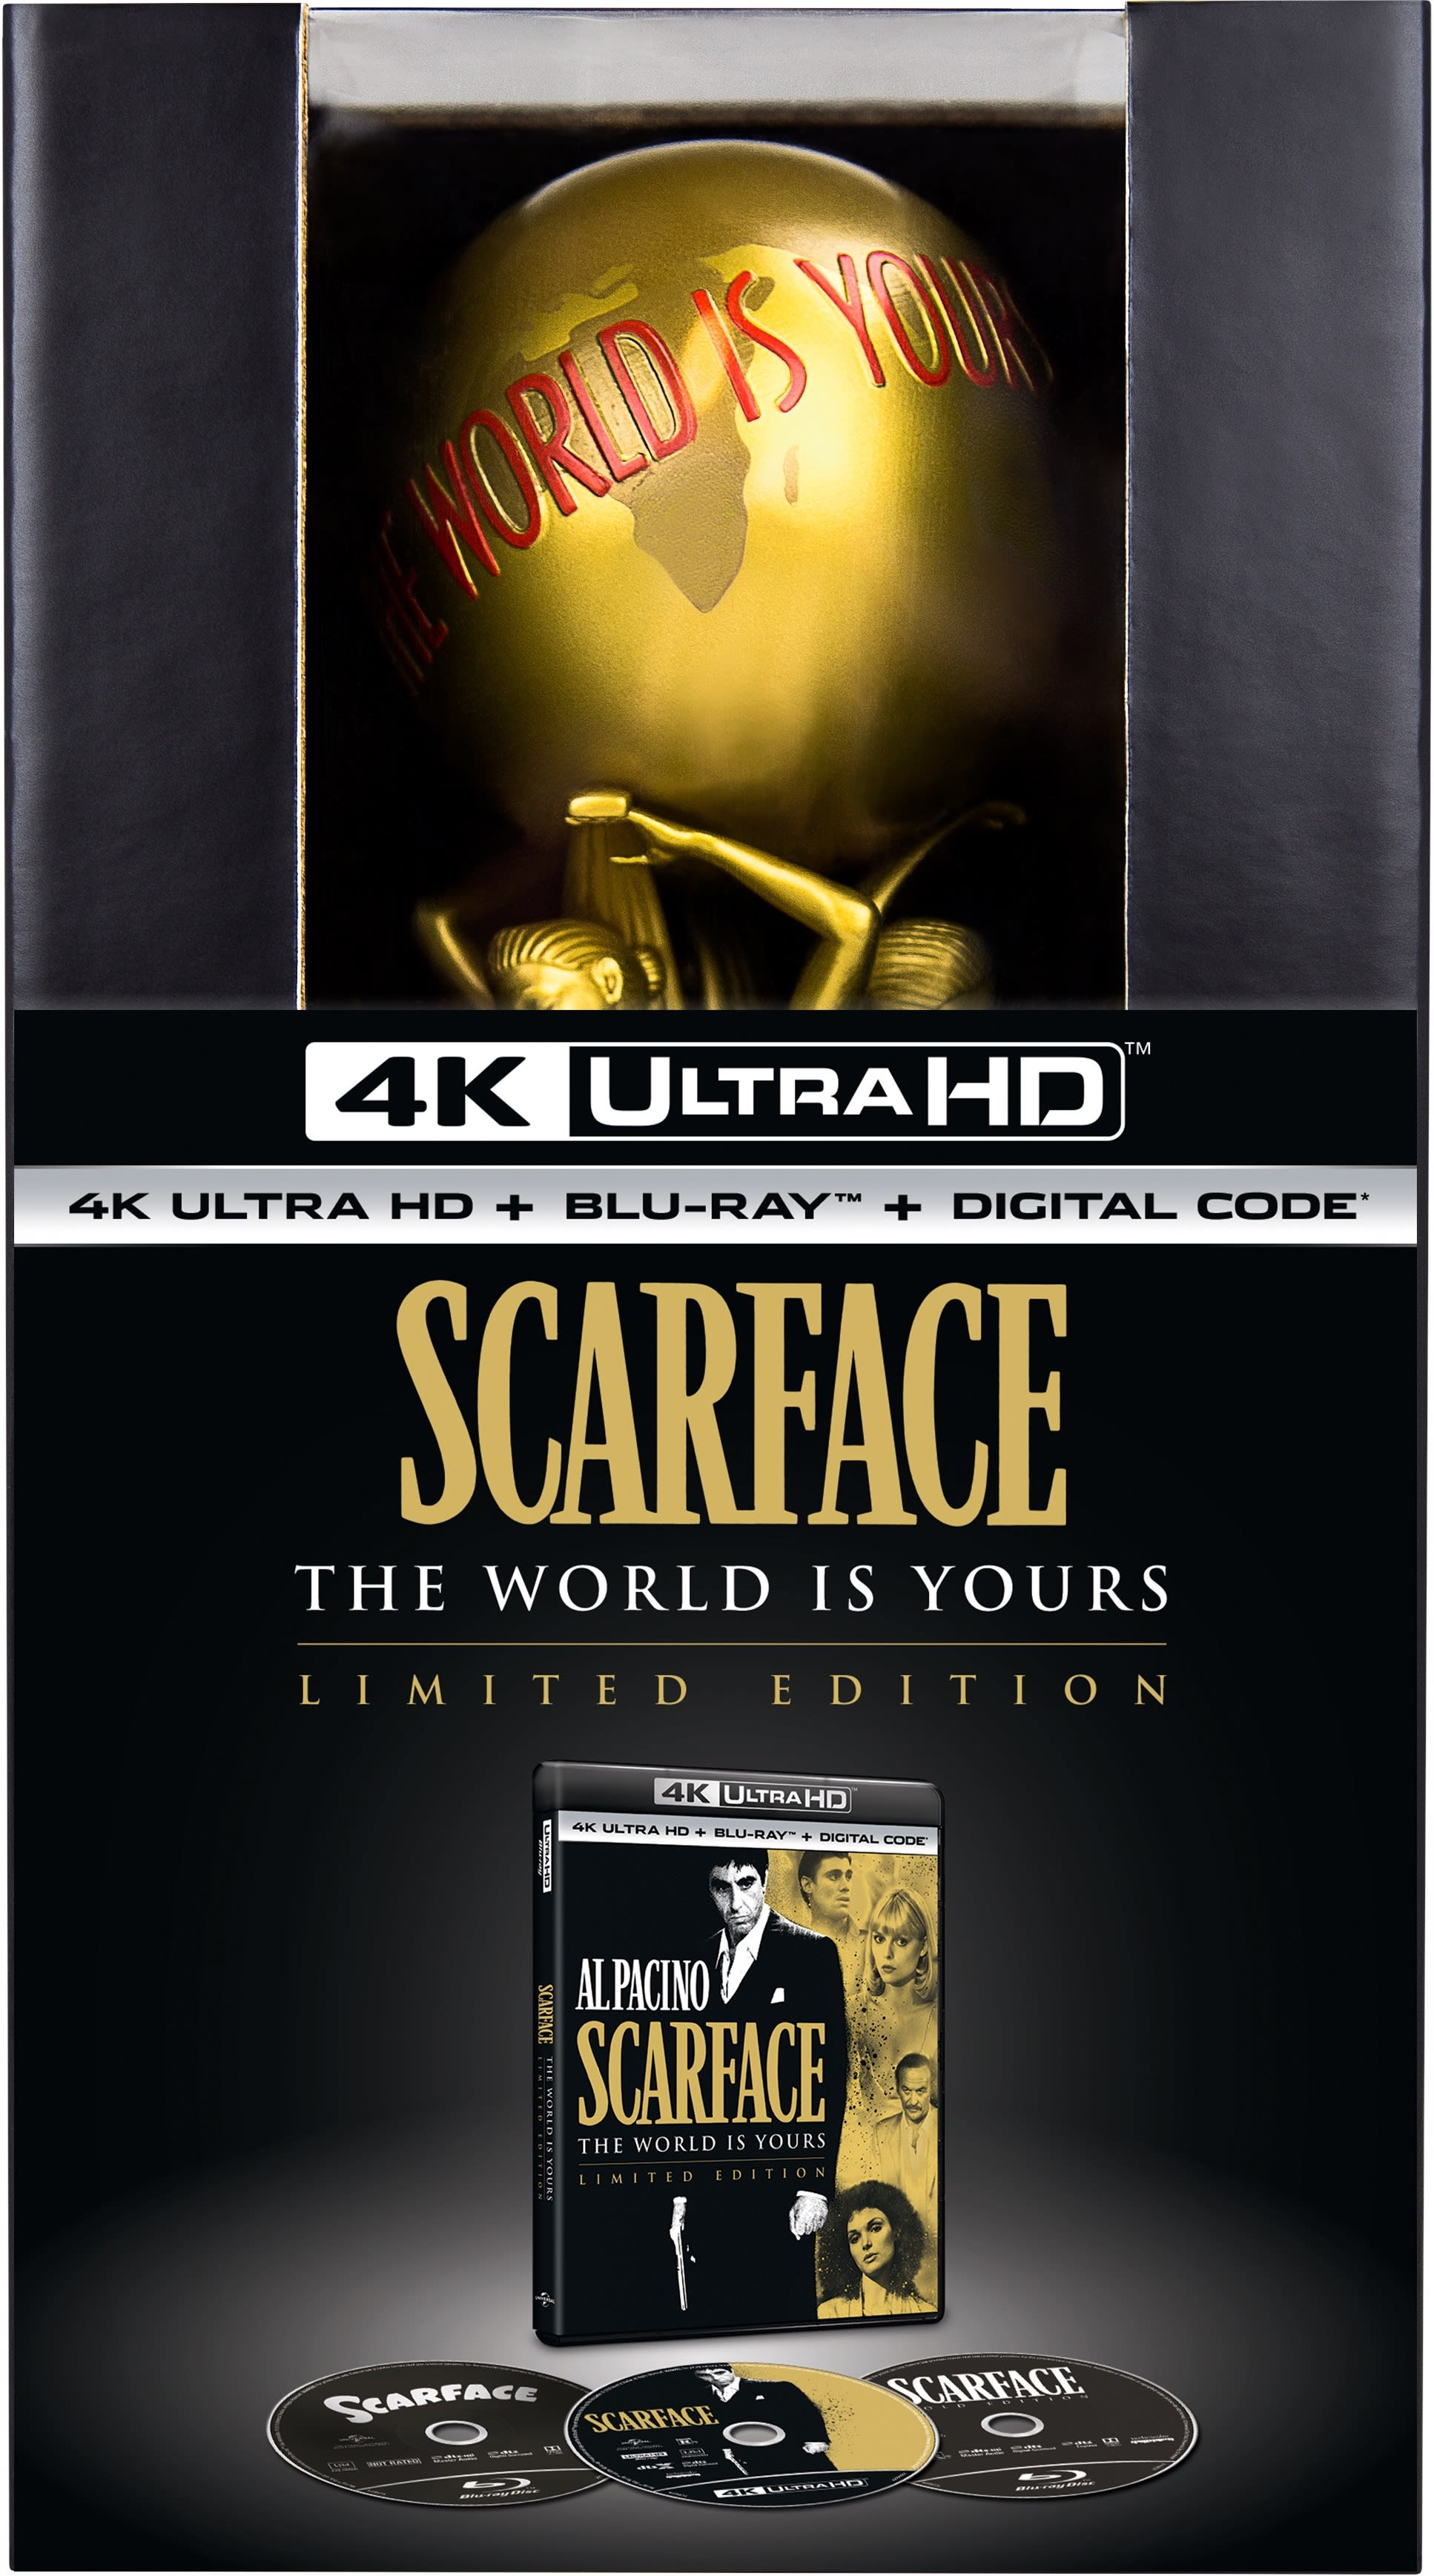 Scarface (4K Ultra HD + Blu-ray + Digital Download (Limited Edition)) [UHD]